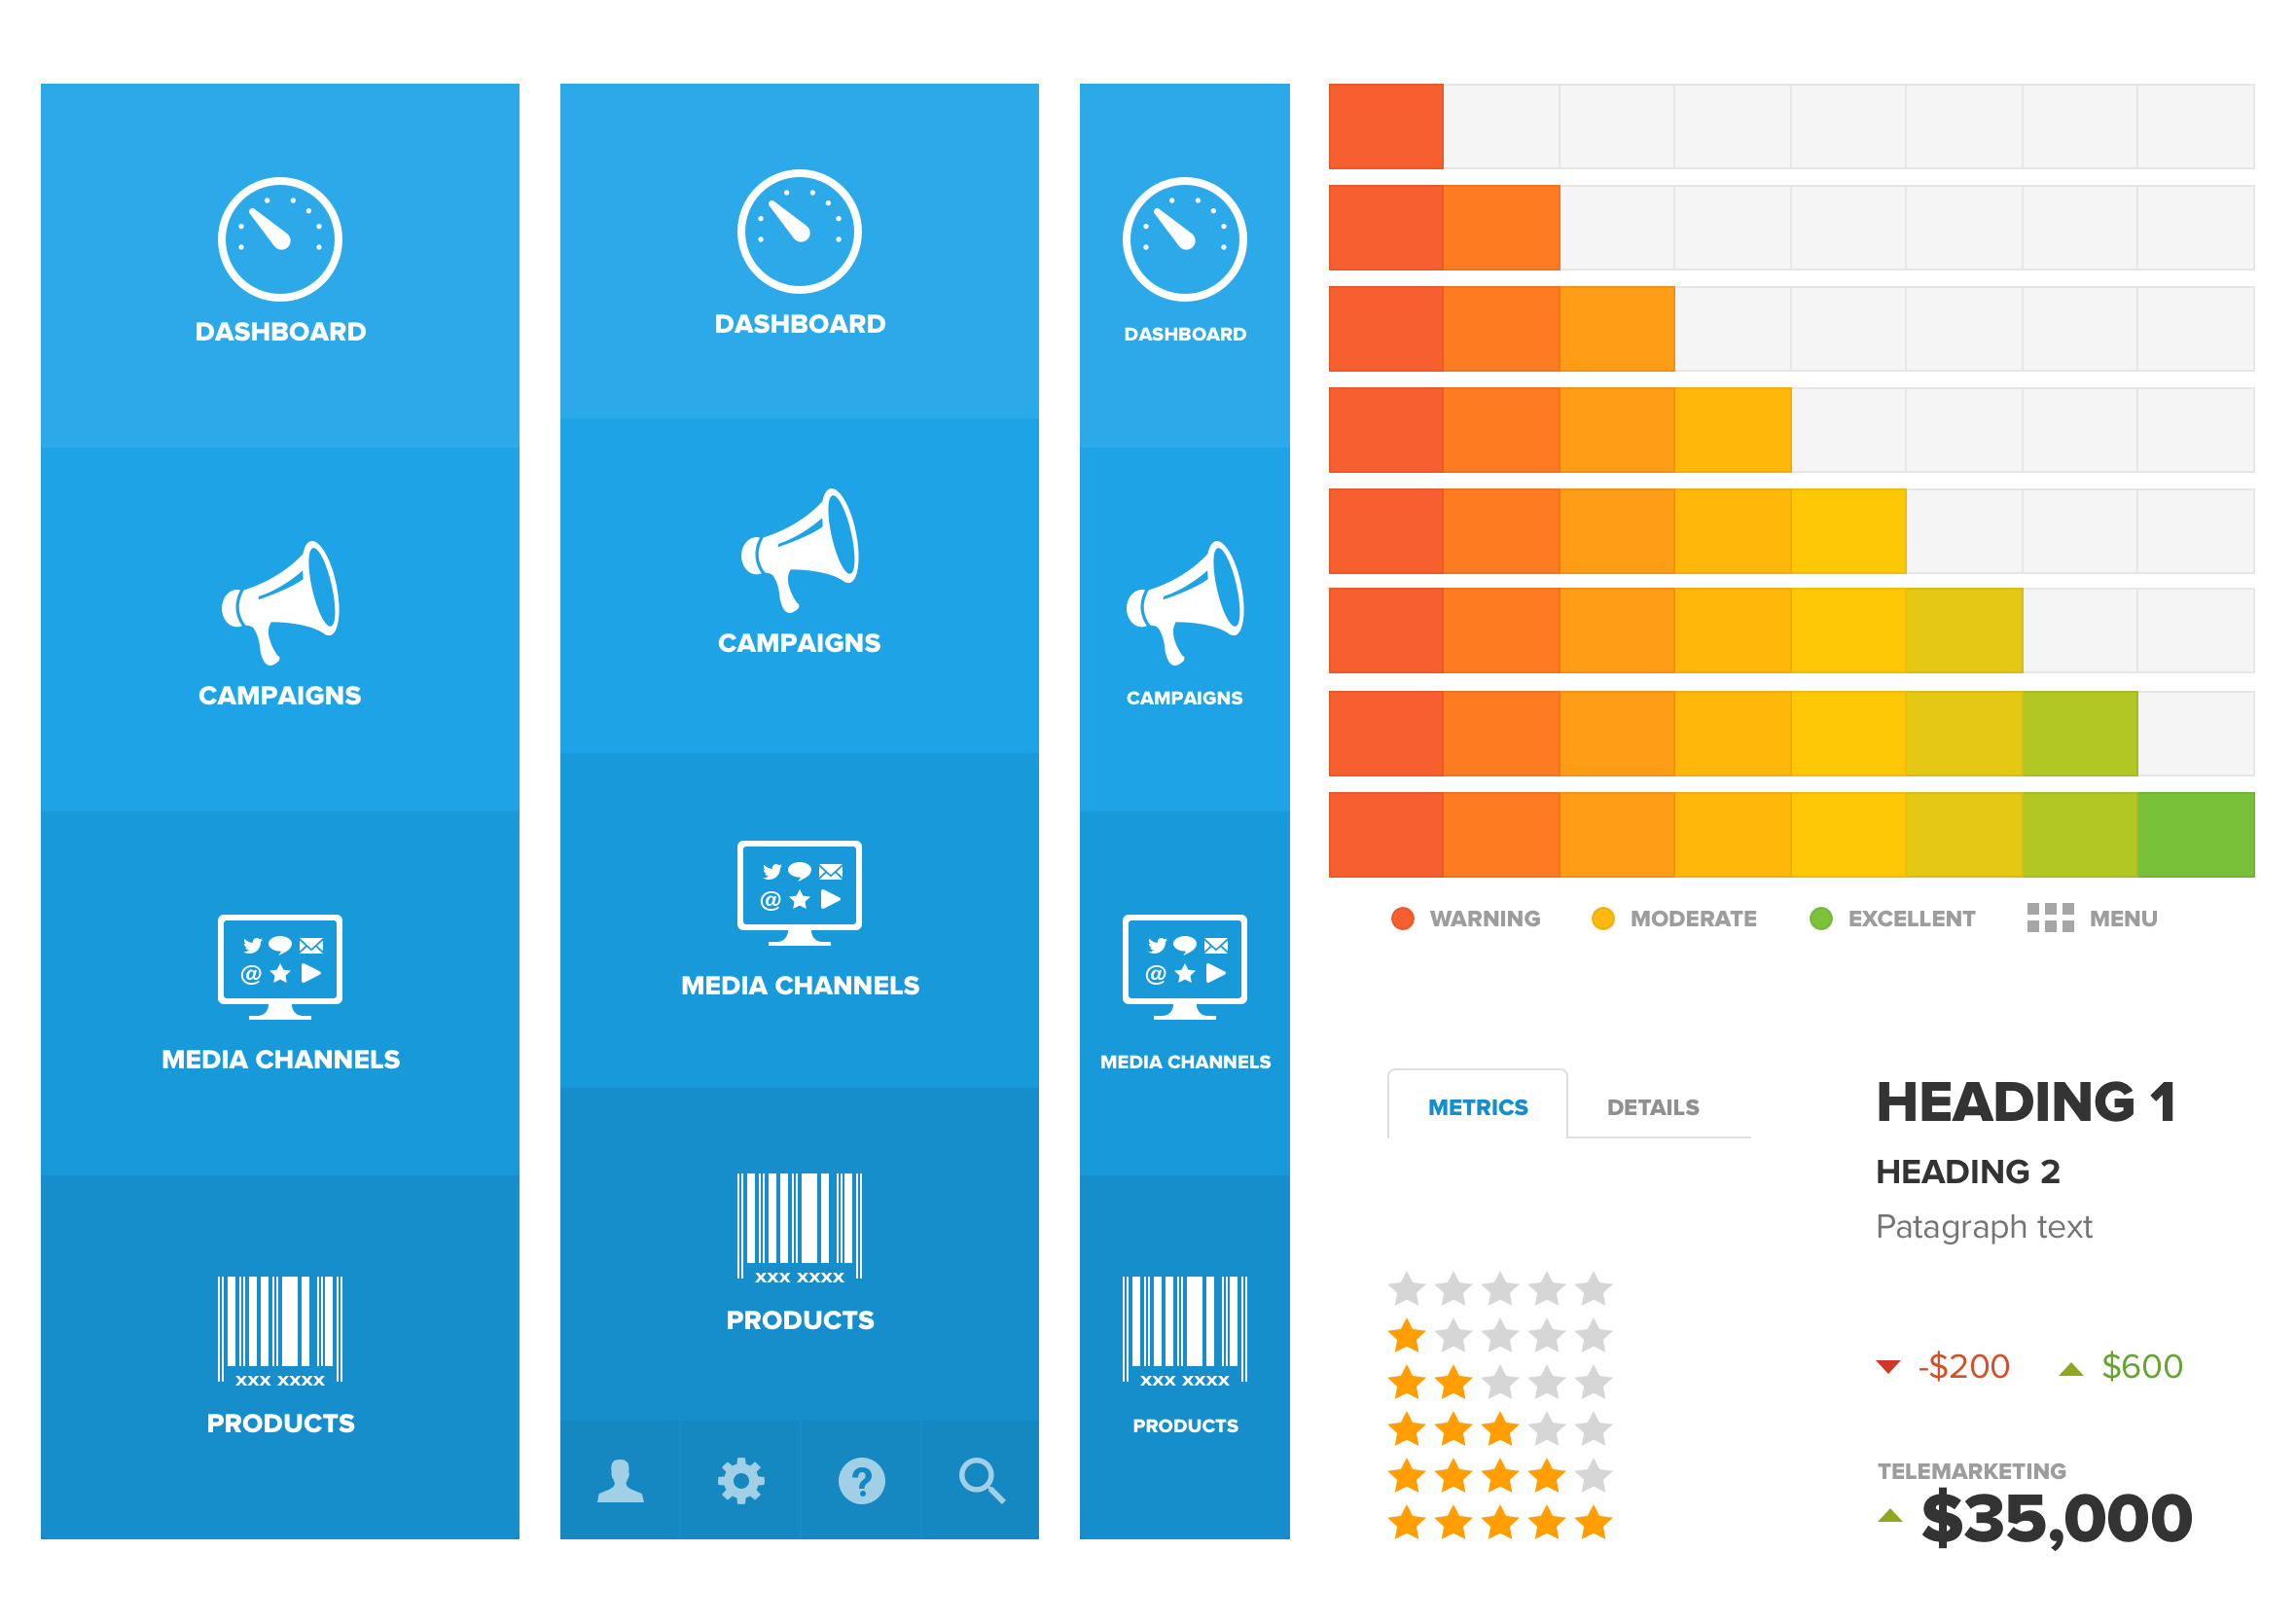 Social marketing dashboard user interface elements